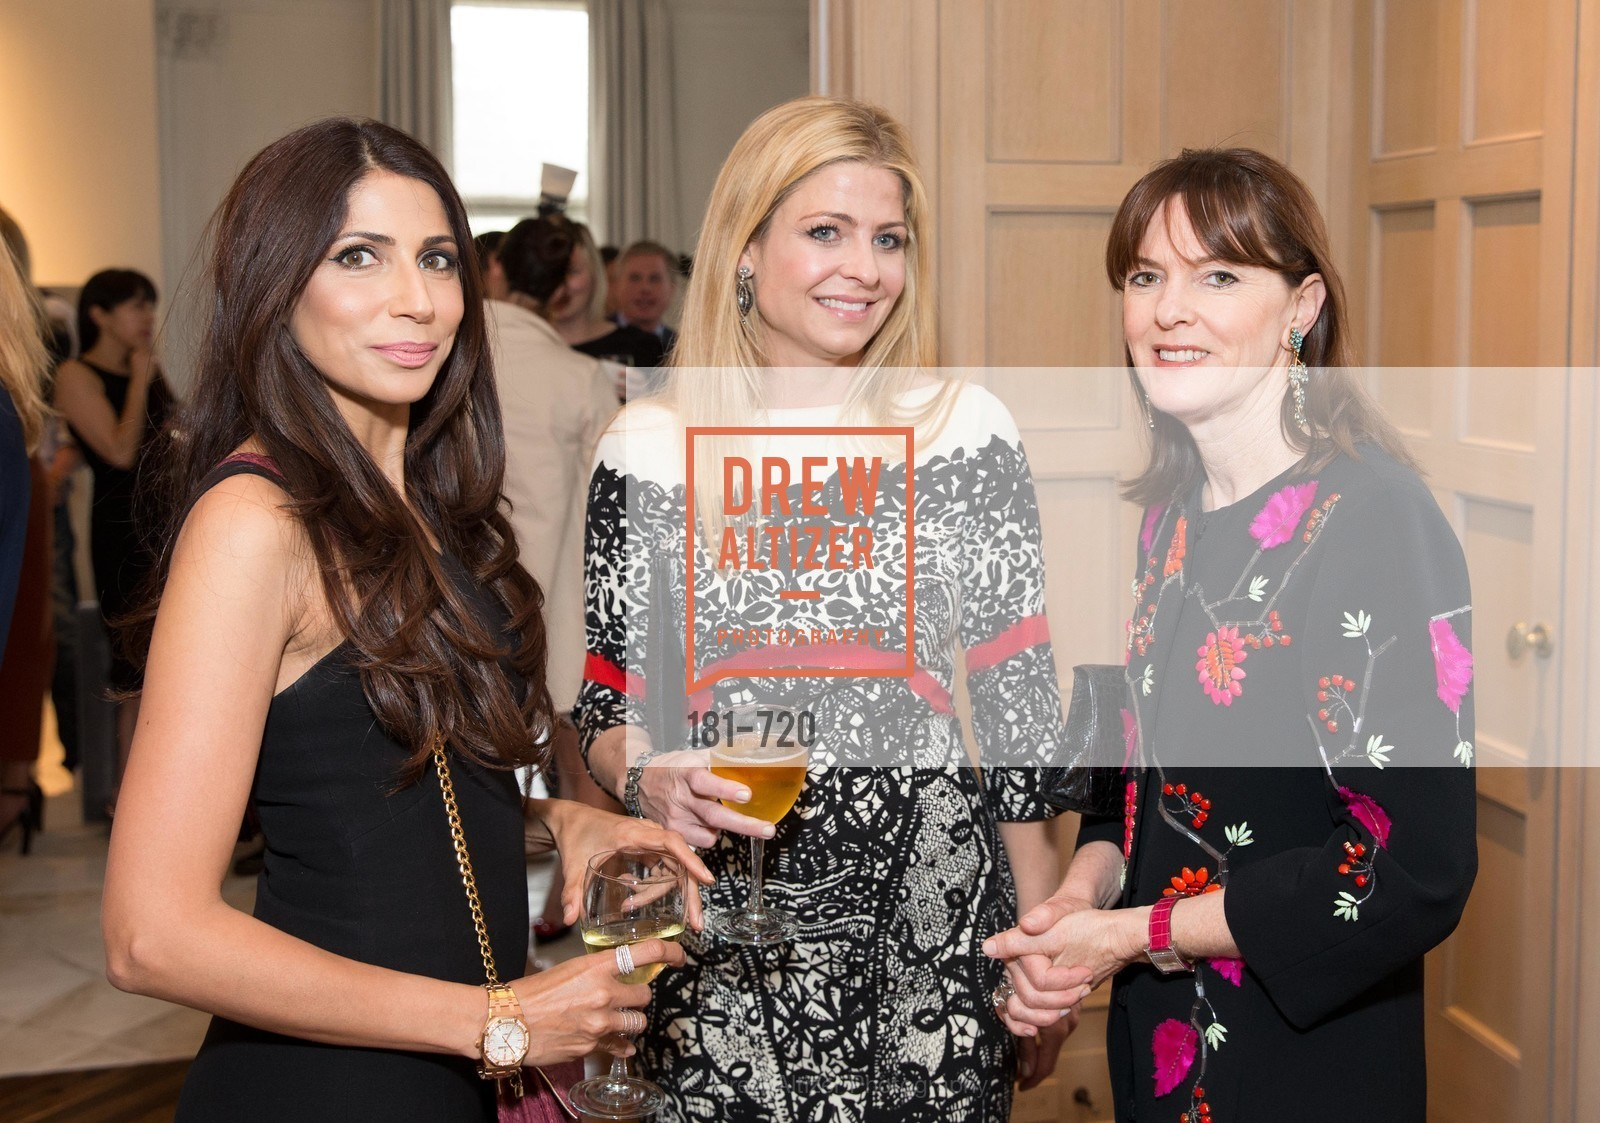 Sobia Shaikh, Jenna Hunt, Allison Speer, C MAGAZINE Editors Cocktail Party, US, May 13th, 2015,Drew Altizer, Drew Altizer Photography, full-service agency, private events, San Francisco photographer, photographer california